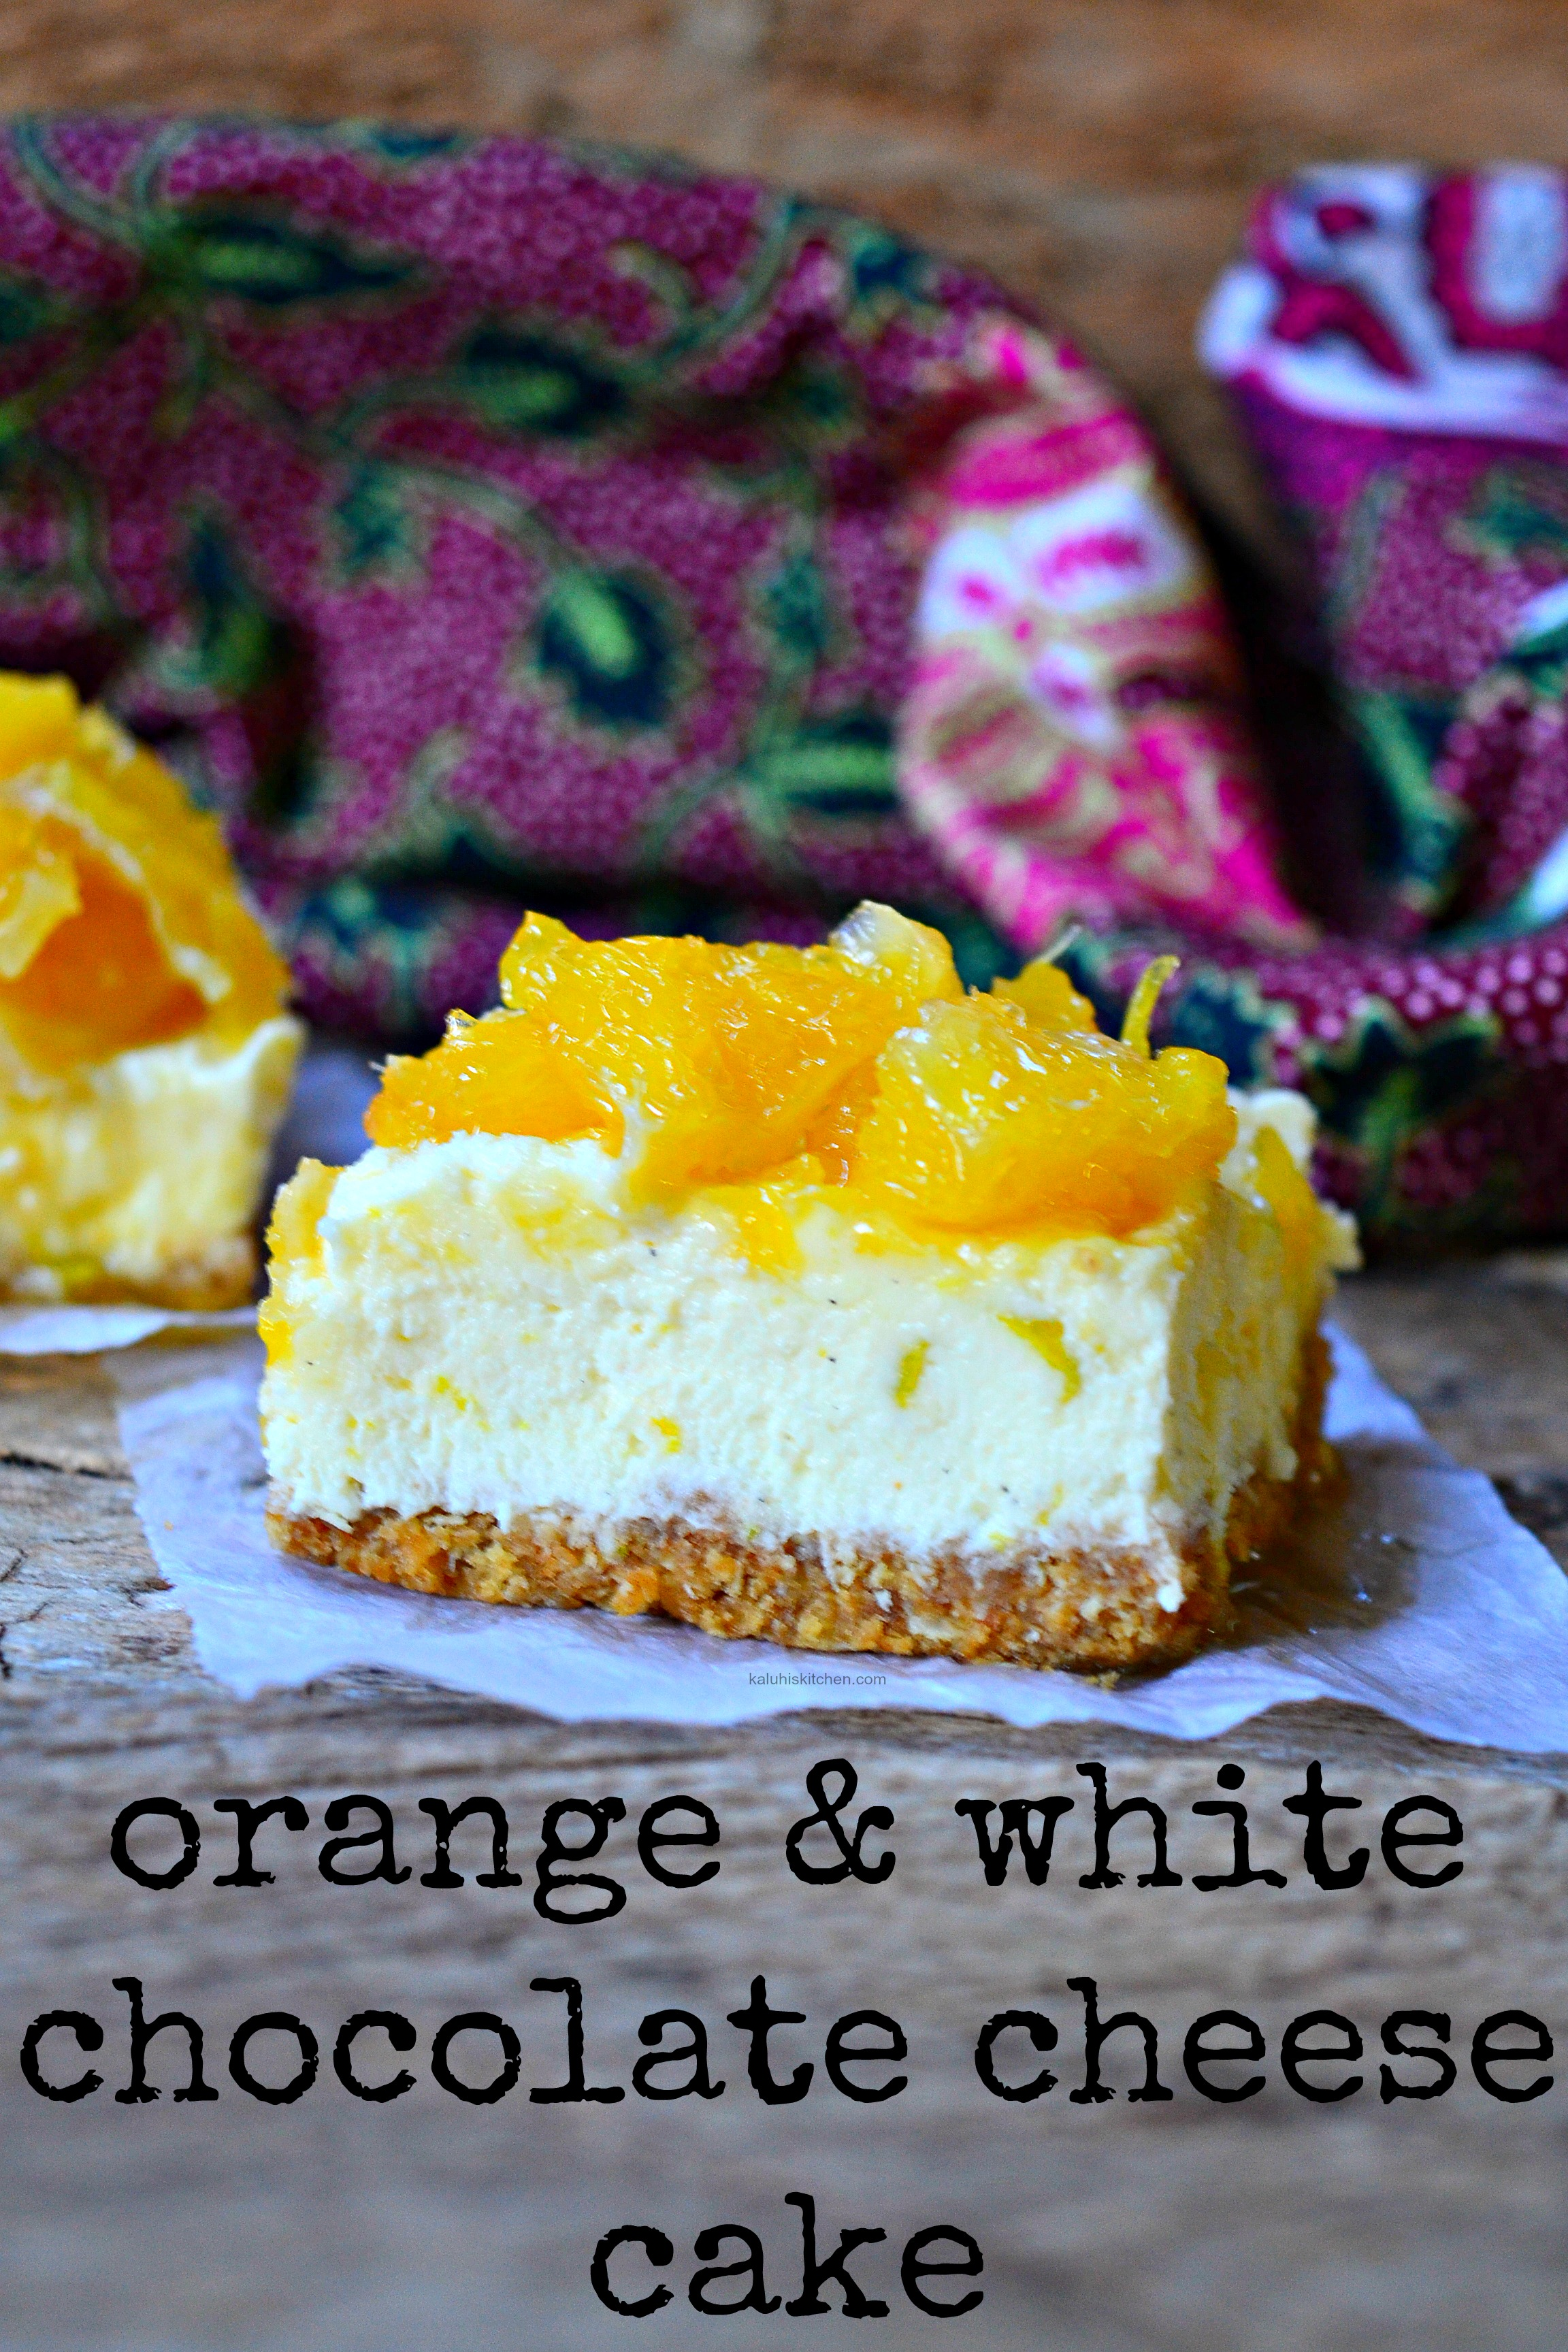 orange and white chocolate cheese cake_no bake cheese cake_cheese cake recipes-kaluhiskitchen.com_kenyan food blogs